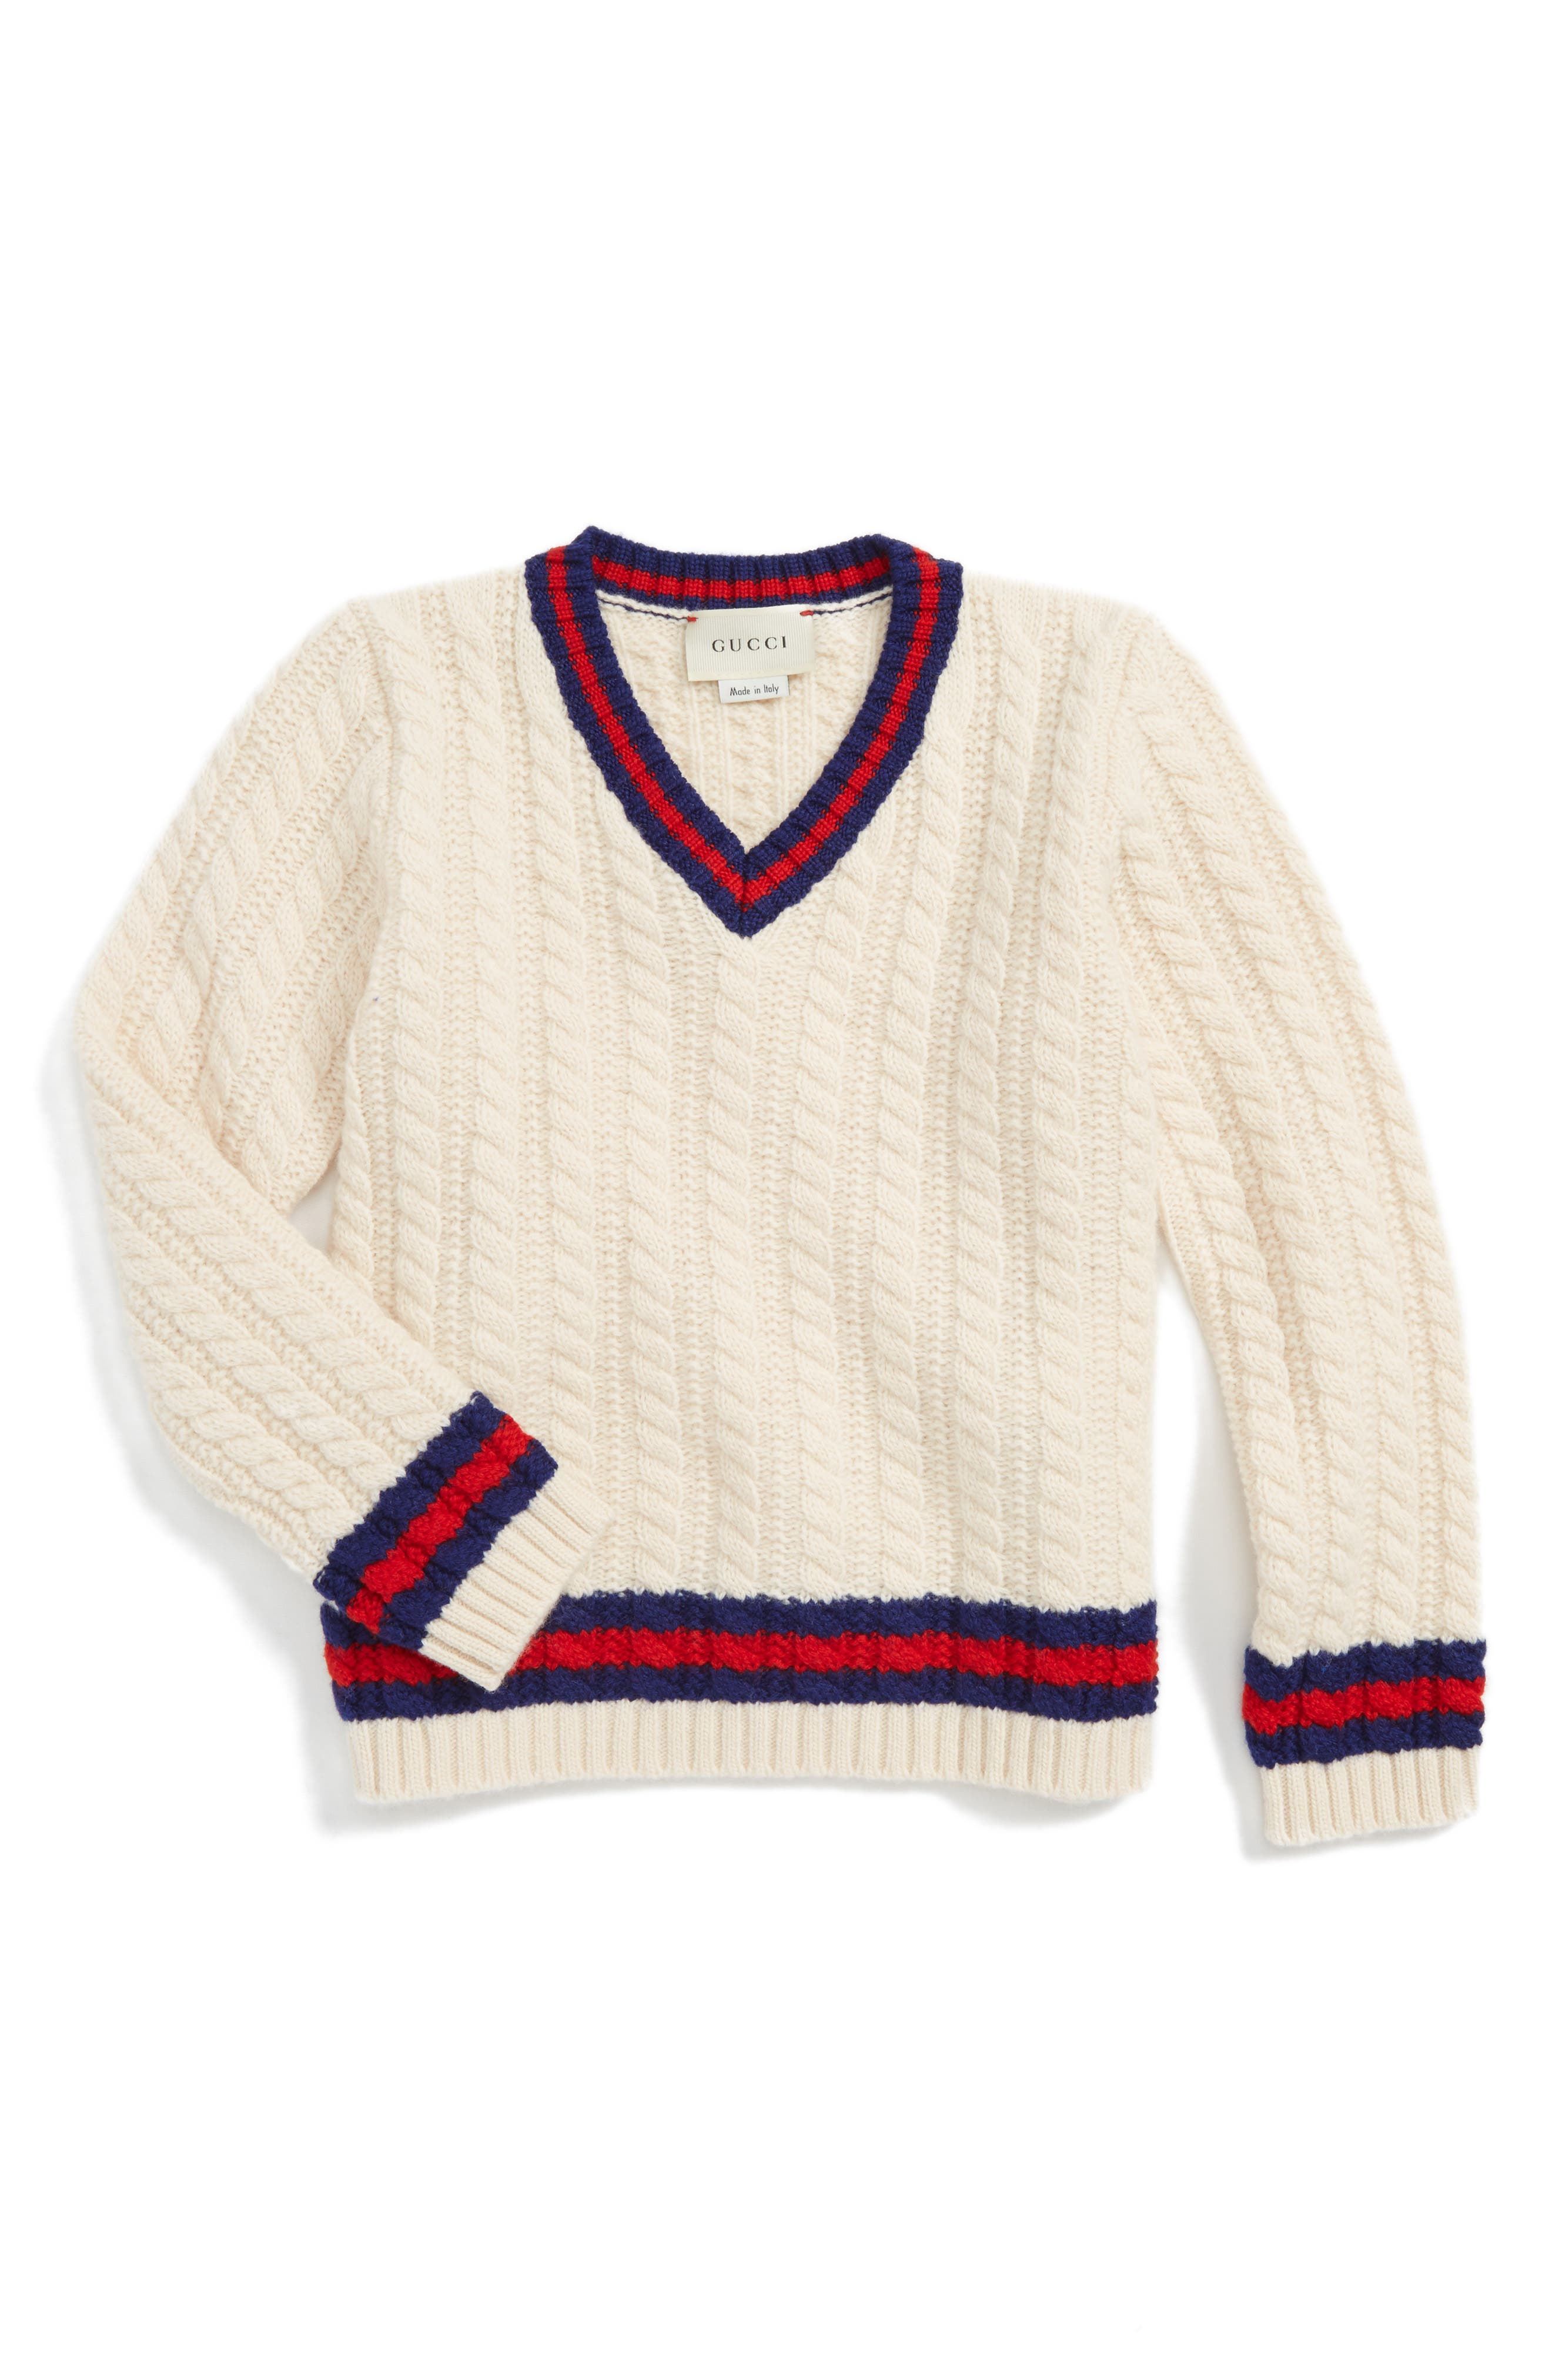 Main Image - Gucci Cable Knit Wool Sweater (Baby)